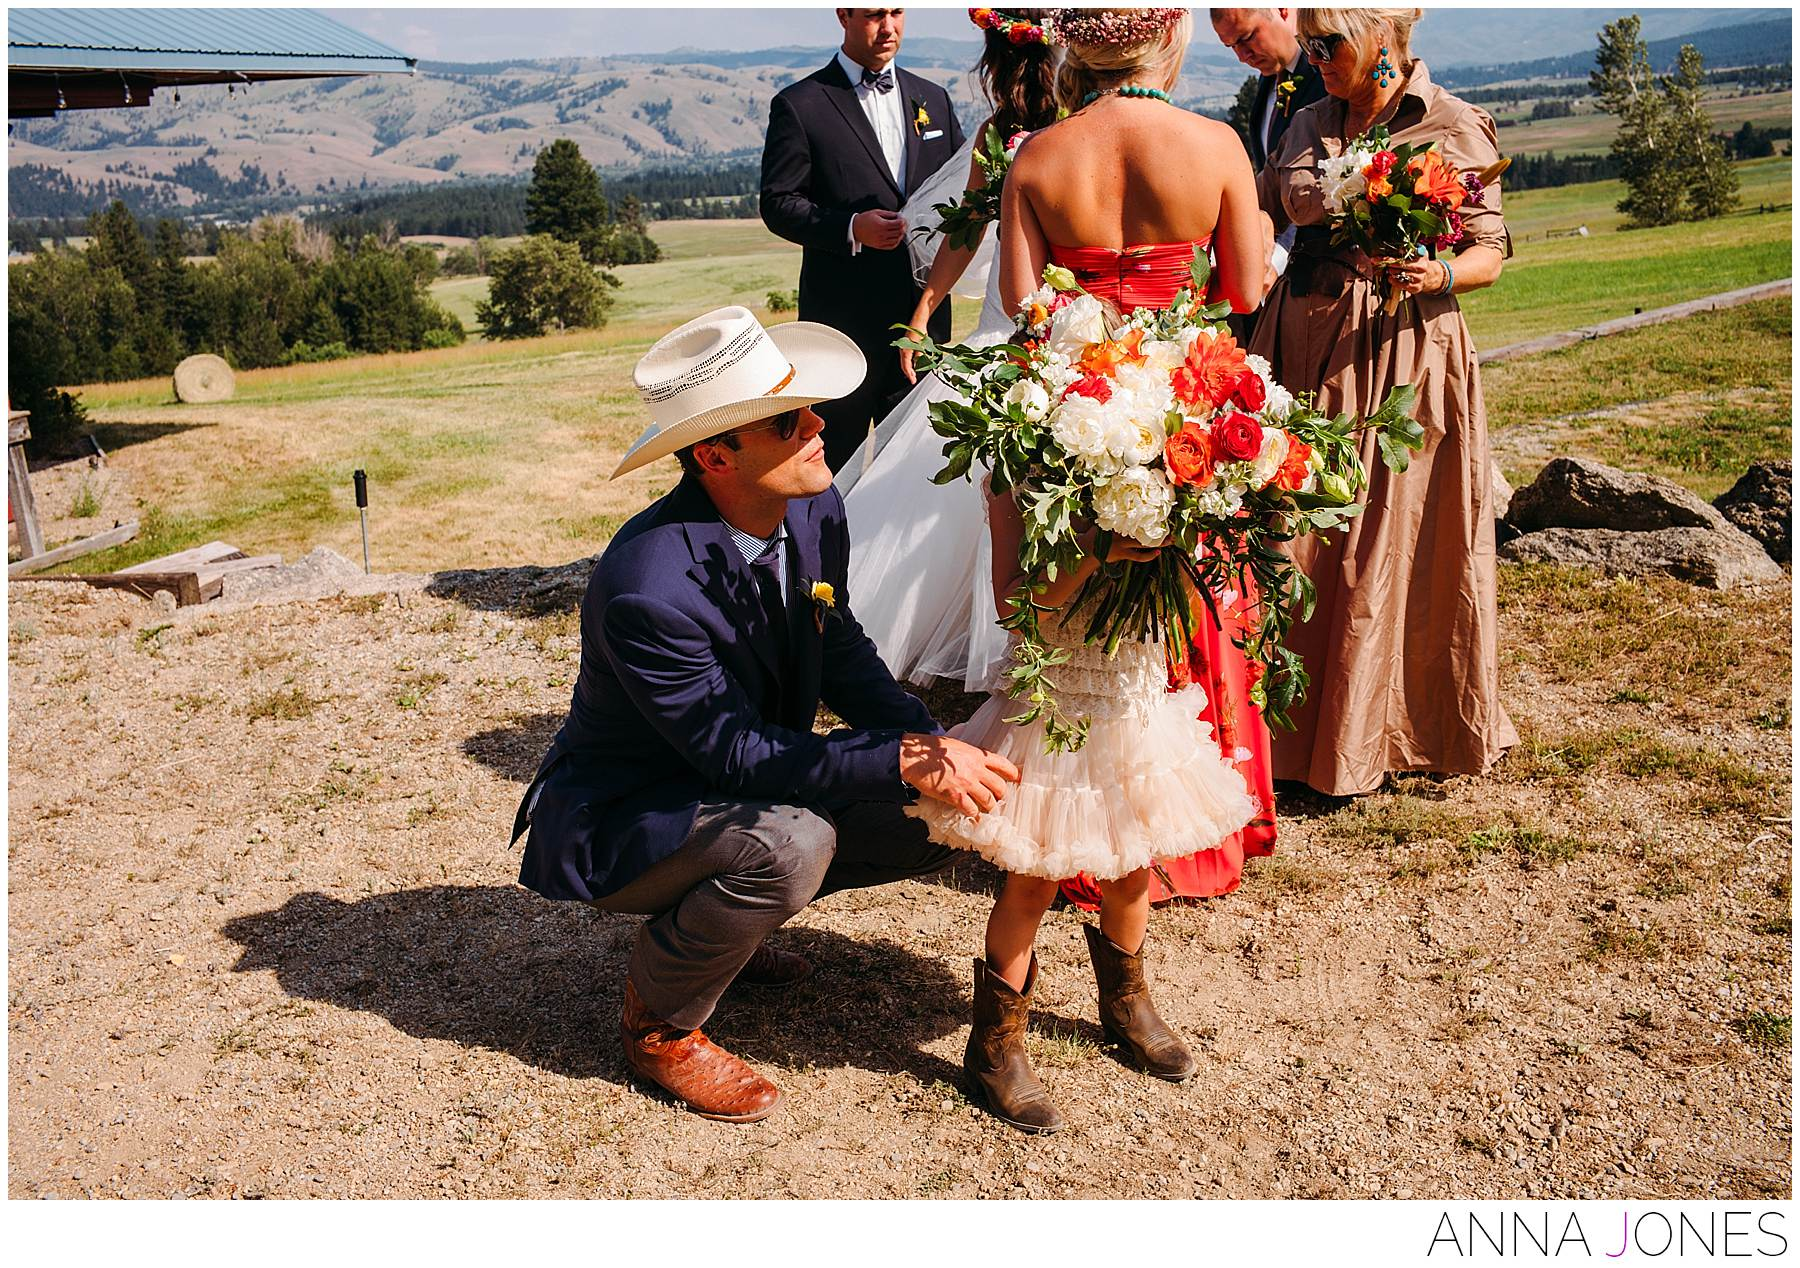 matt Cassel wedding in Montana ranch